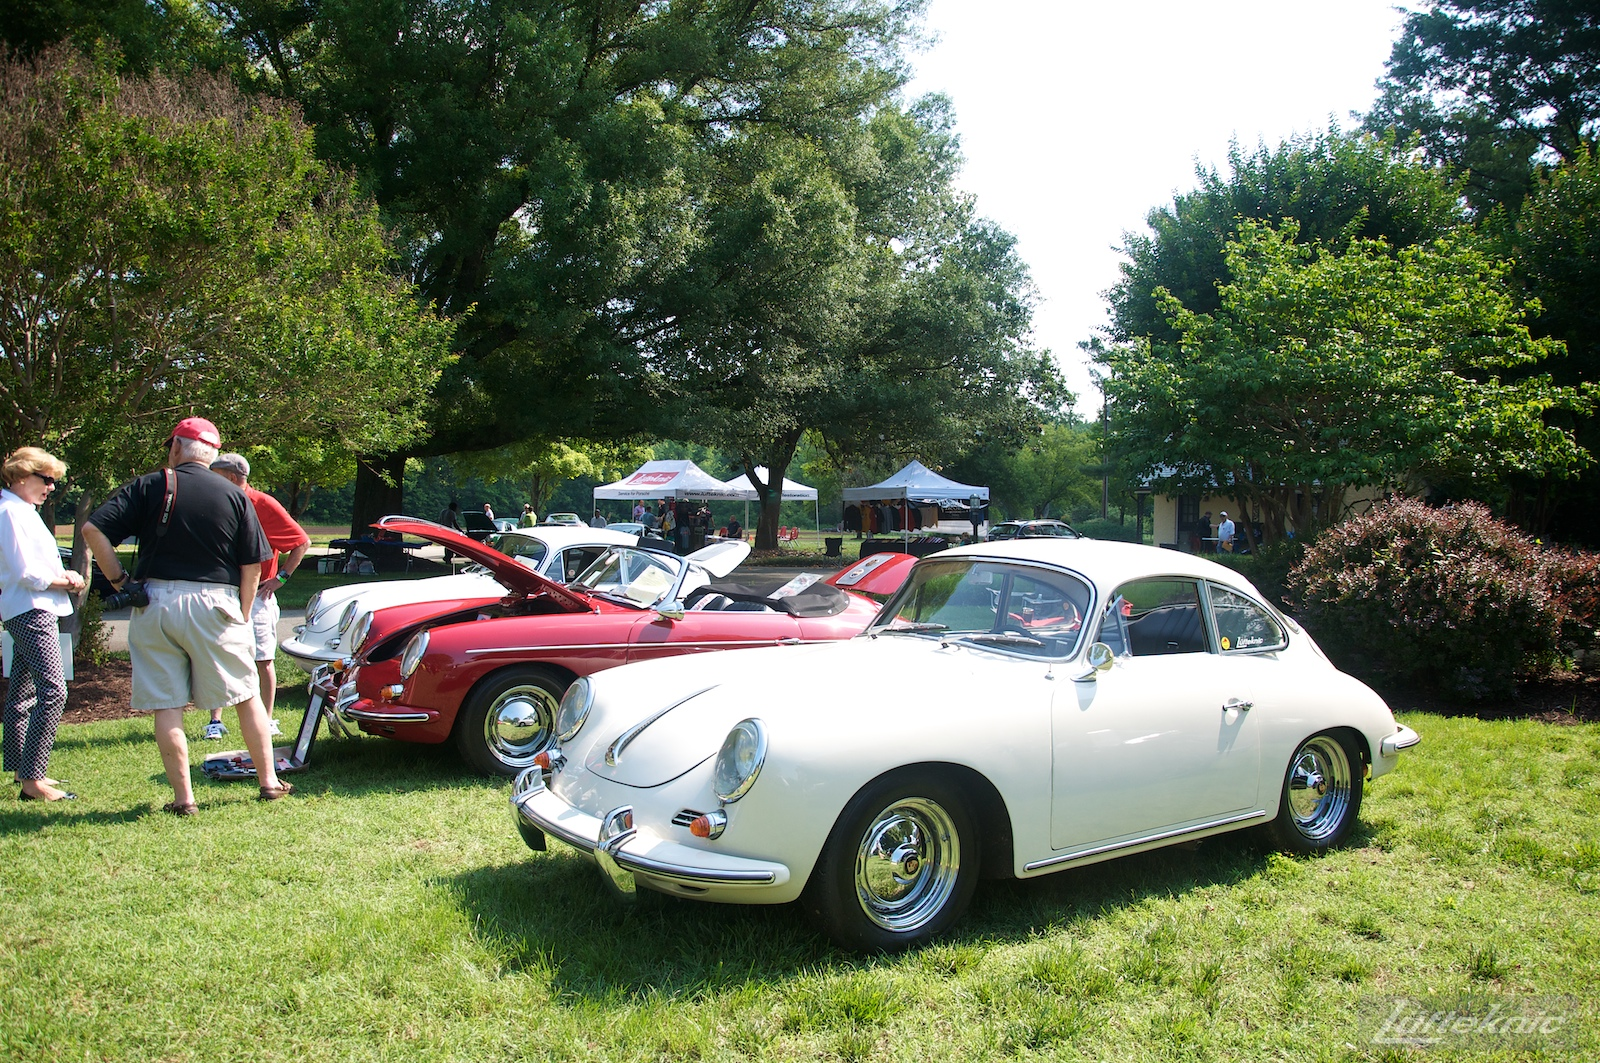 White 356SC at the Richmond Porsche Meet.